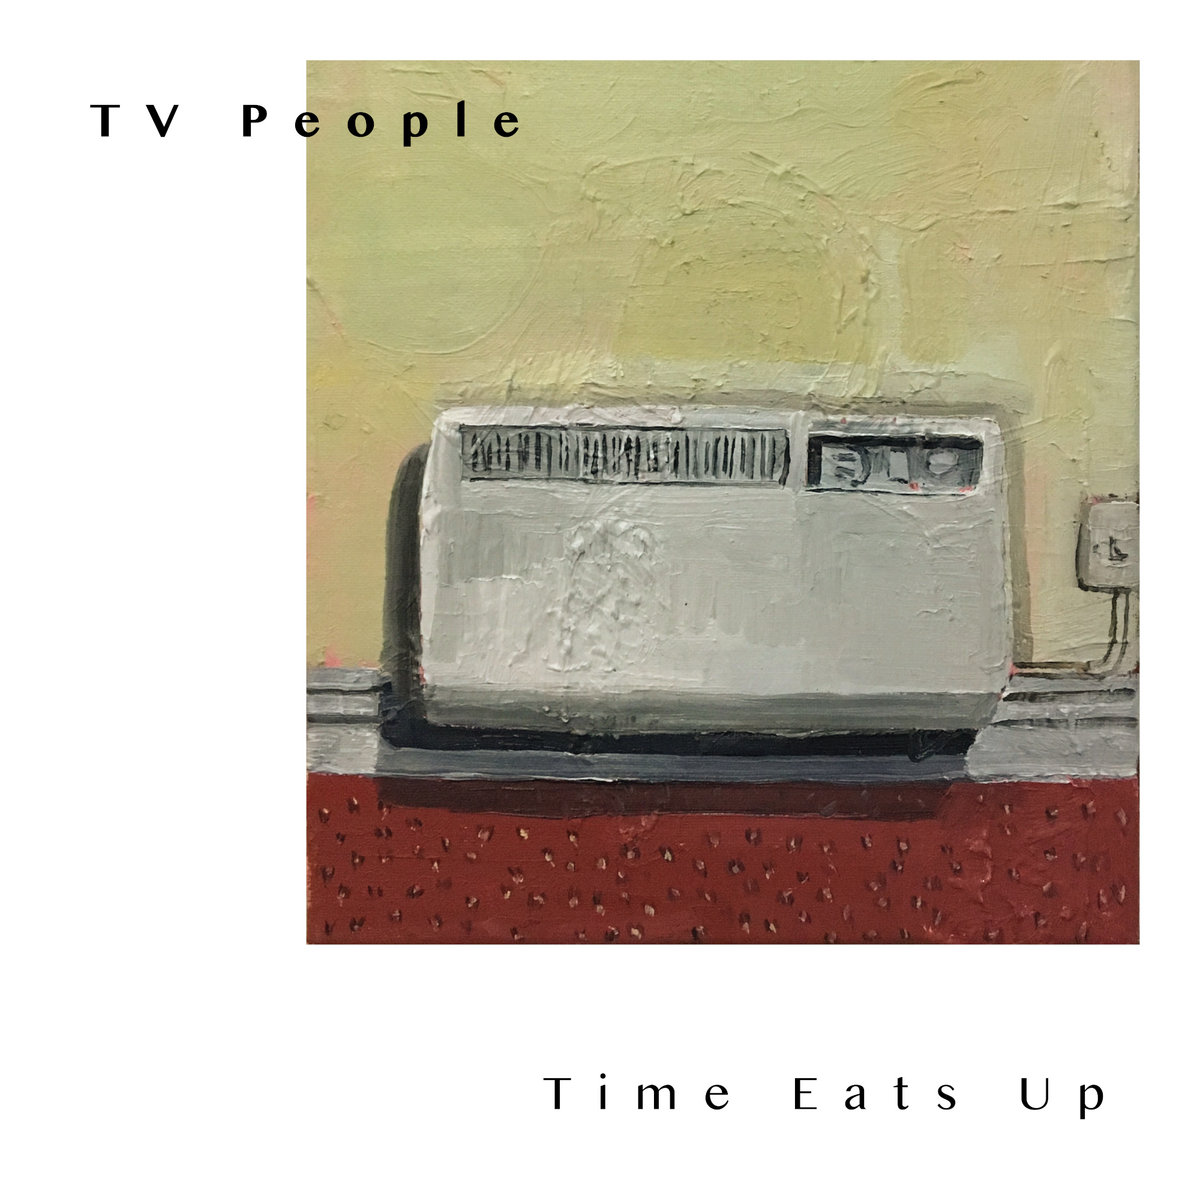 Time Eats Up - TV People